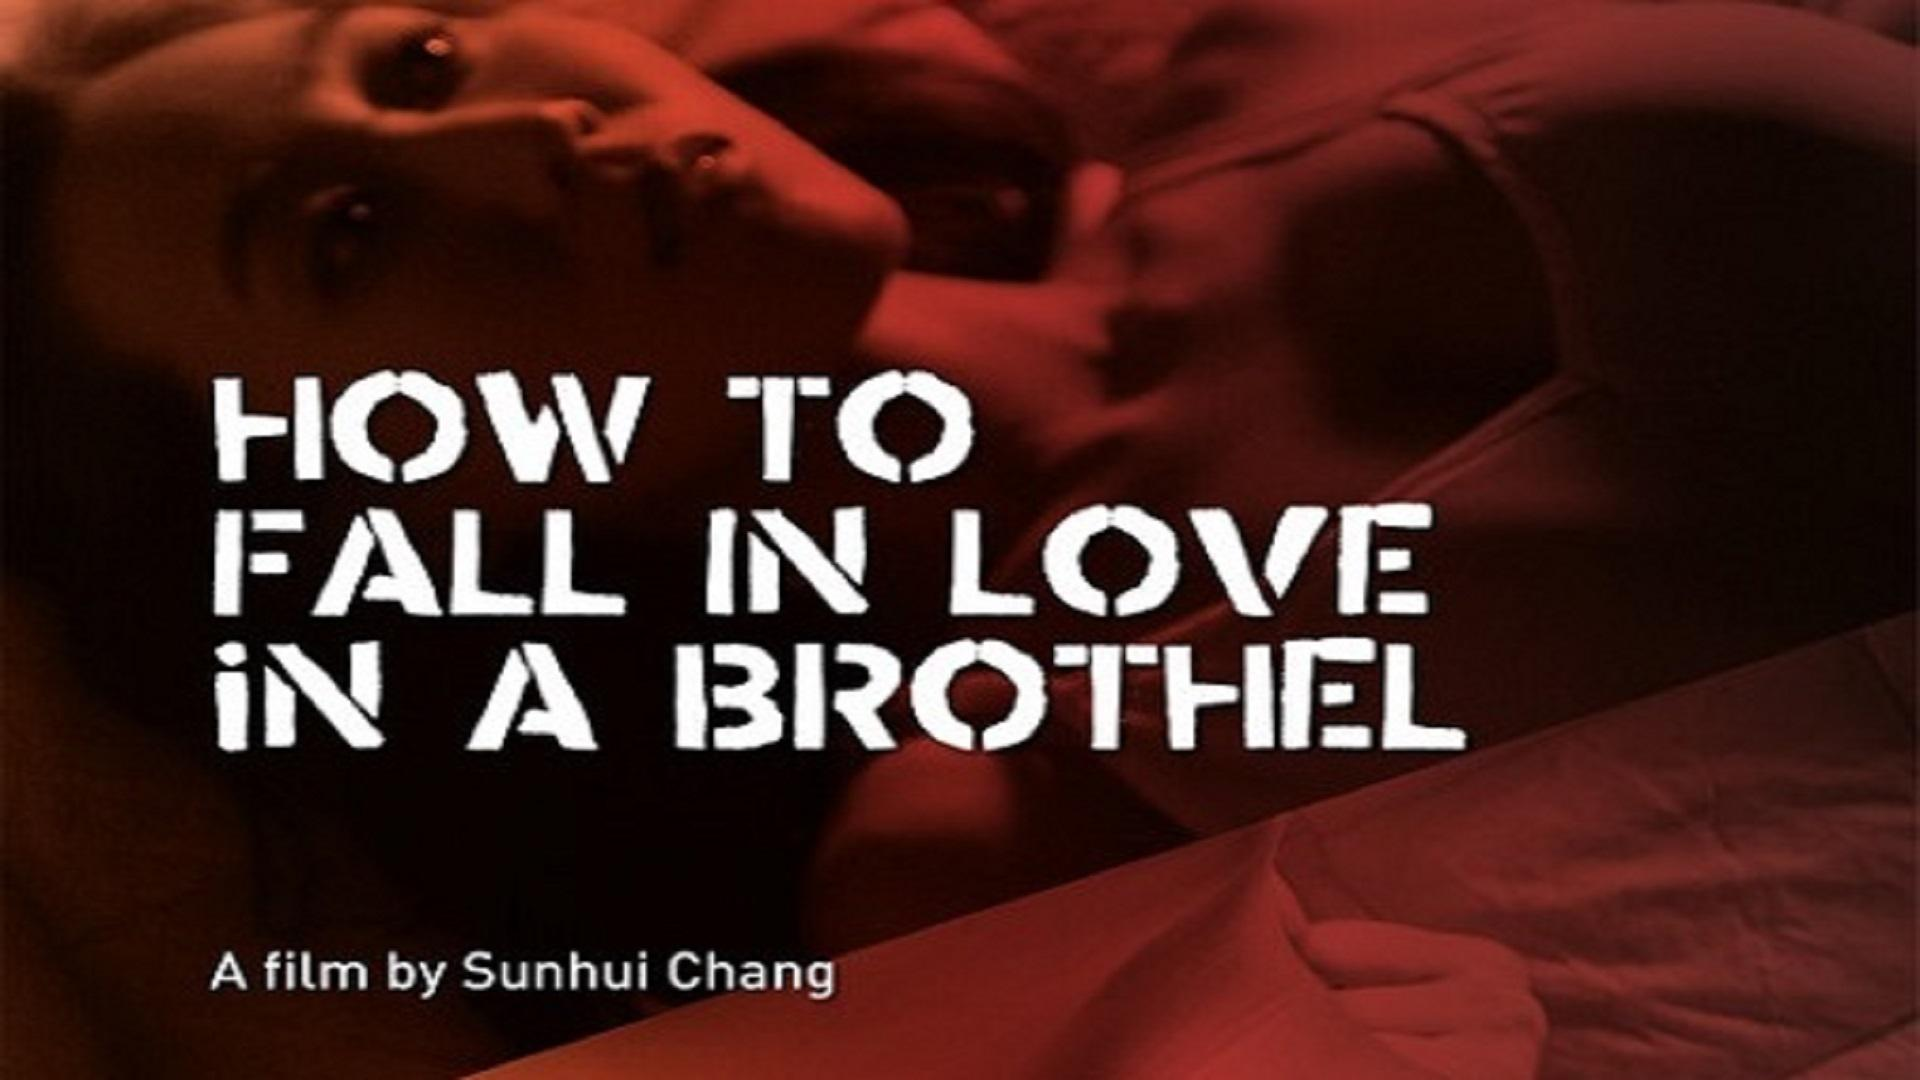 How to Fall in Love in a Brothel